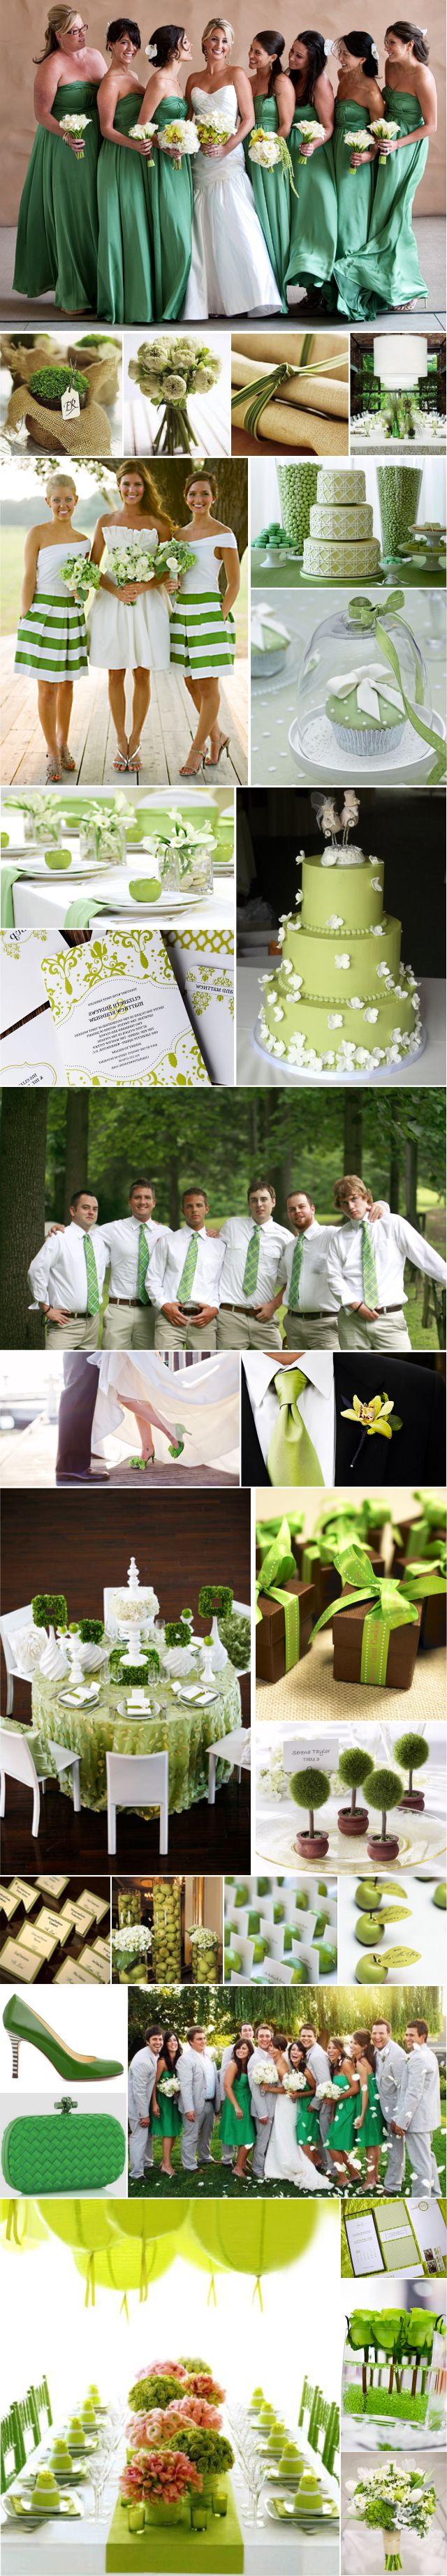 I LOVE these green and white striped bridesmaids dresses :) Such a cute and flattering cut and the color is perfect!